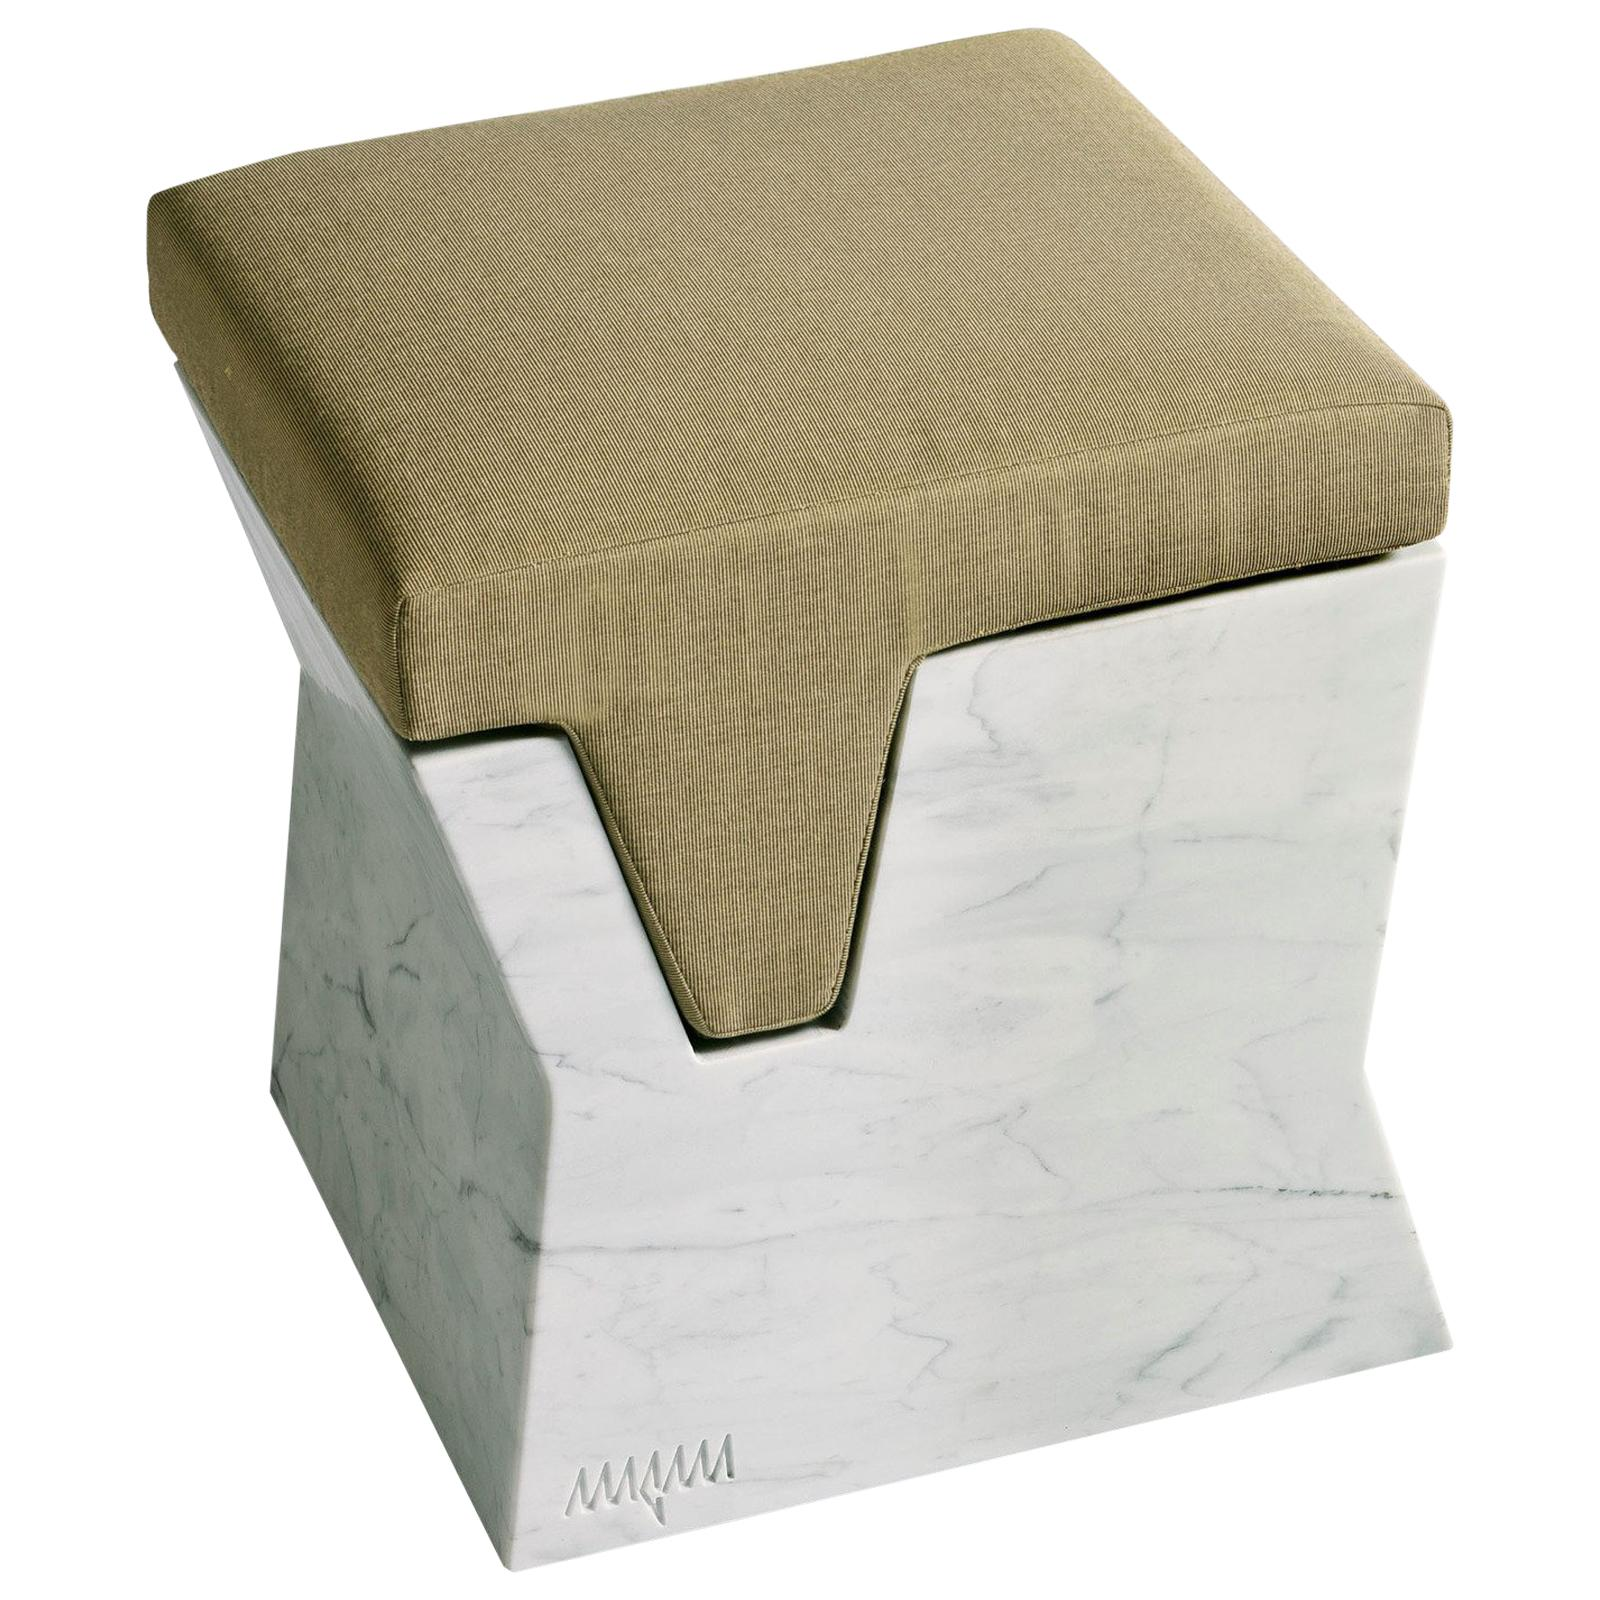 Plaza Pouf with Cushion by Paolo Salvadè by MGM Marmi & Graniti